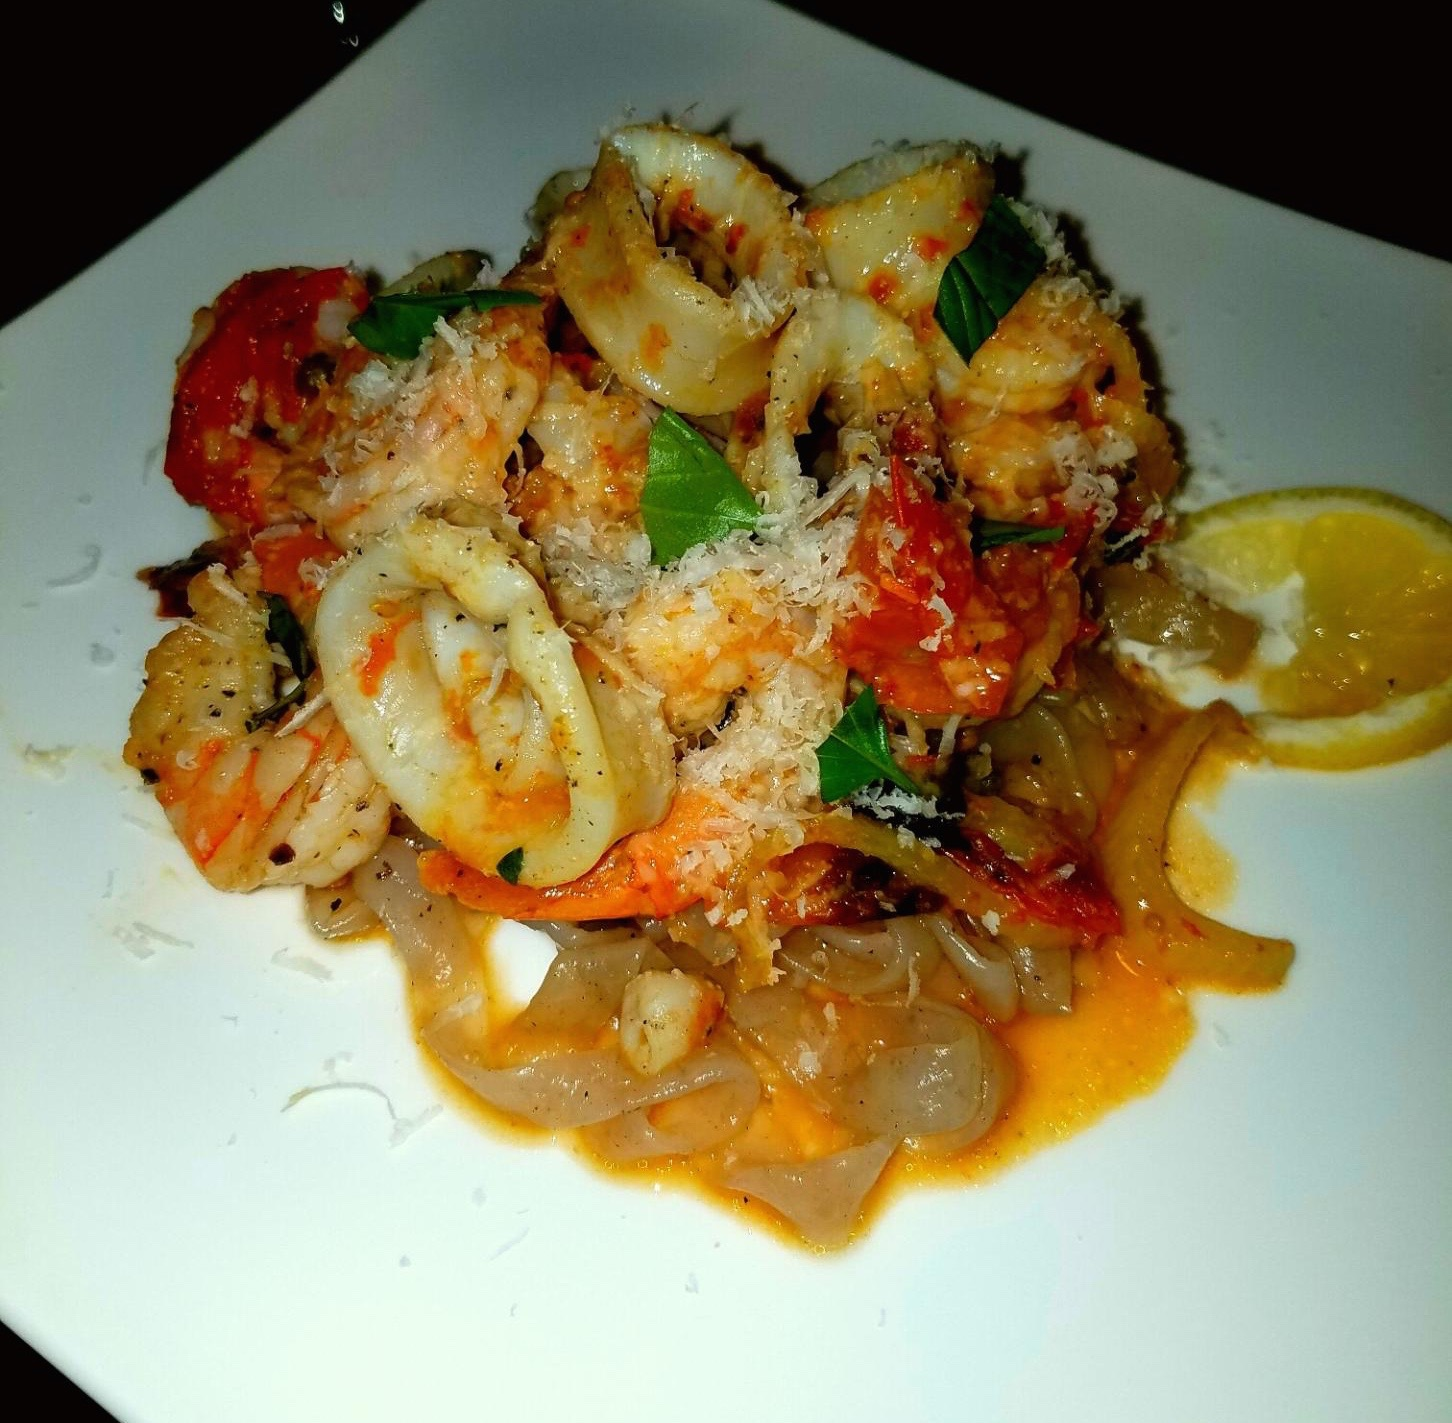 Calamari and shrimp in roasted baby heirloom caper fennel white wine sauce